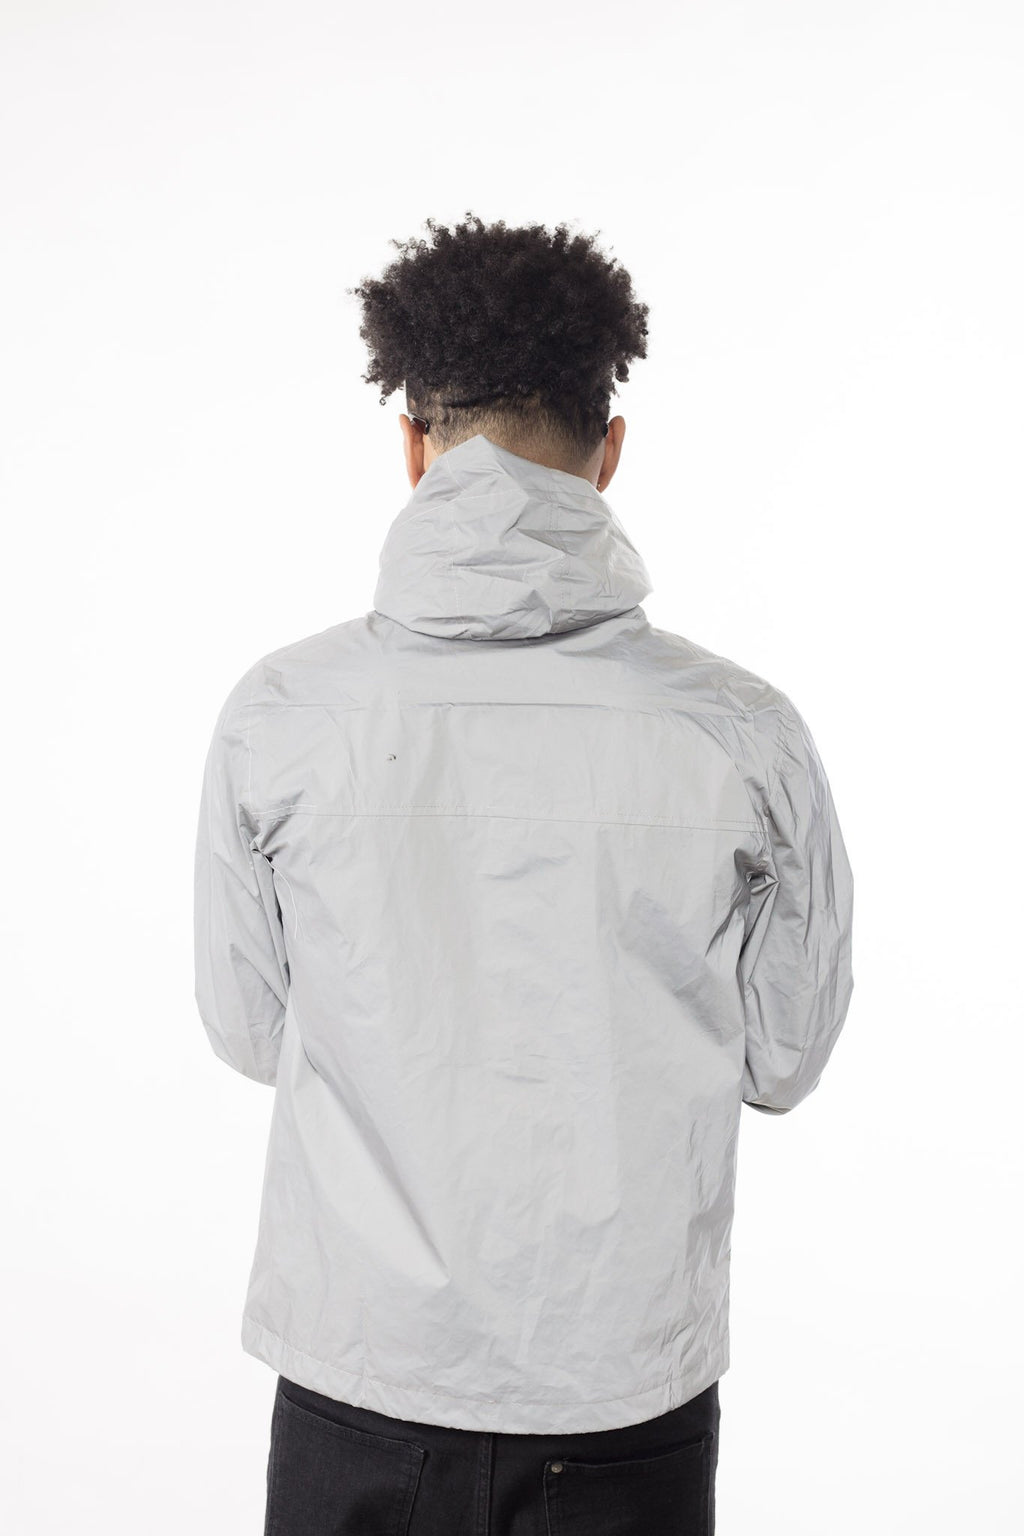 Murderous Reflective Jacket - Murderous Clothing